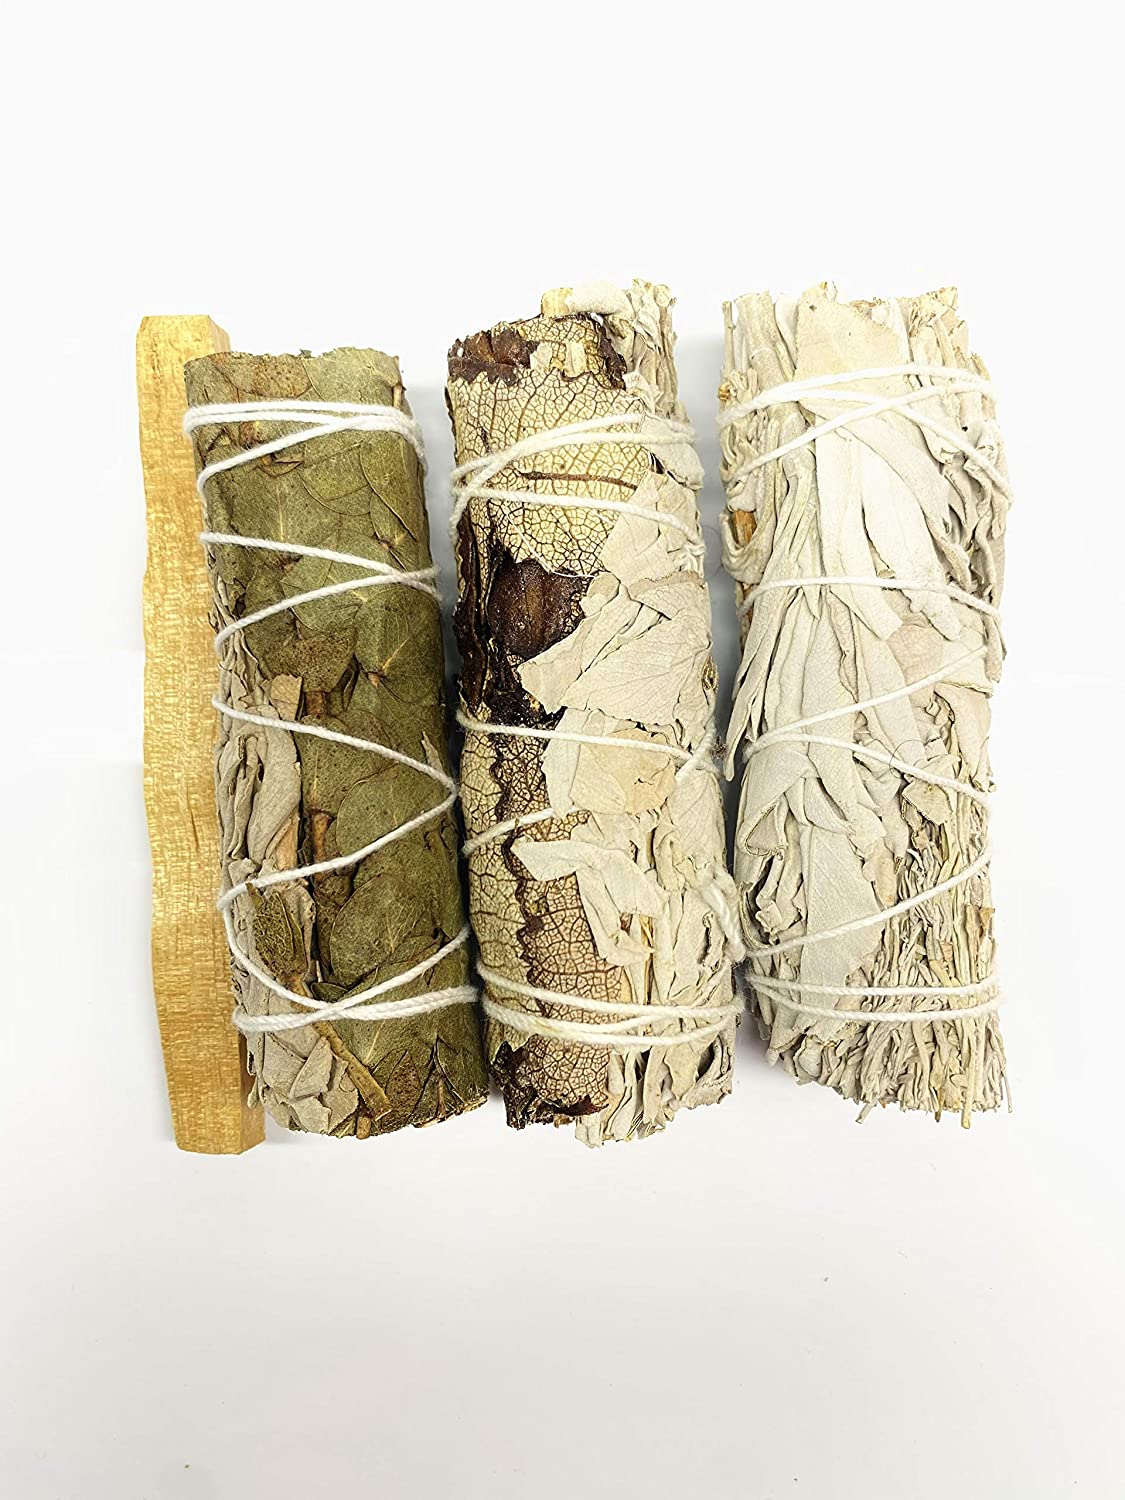 California White Sage Mix with Yerba Santa, Eucalyptus & Blue Sage for Home Cleansing, Healing, Meditation & Smudging Rituals. 100% Natural.